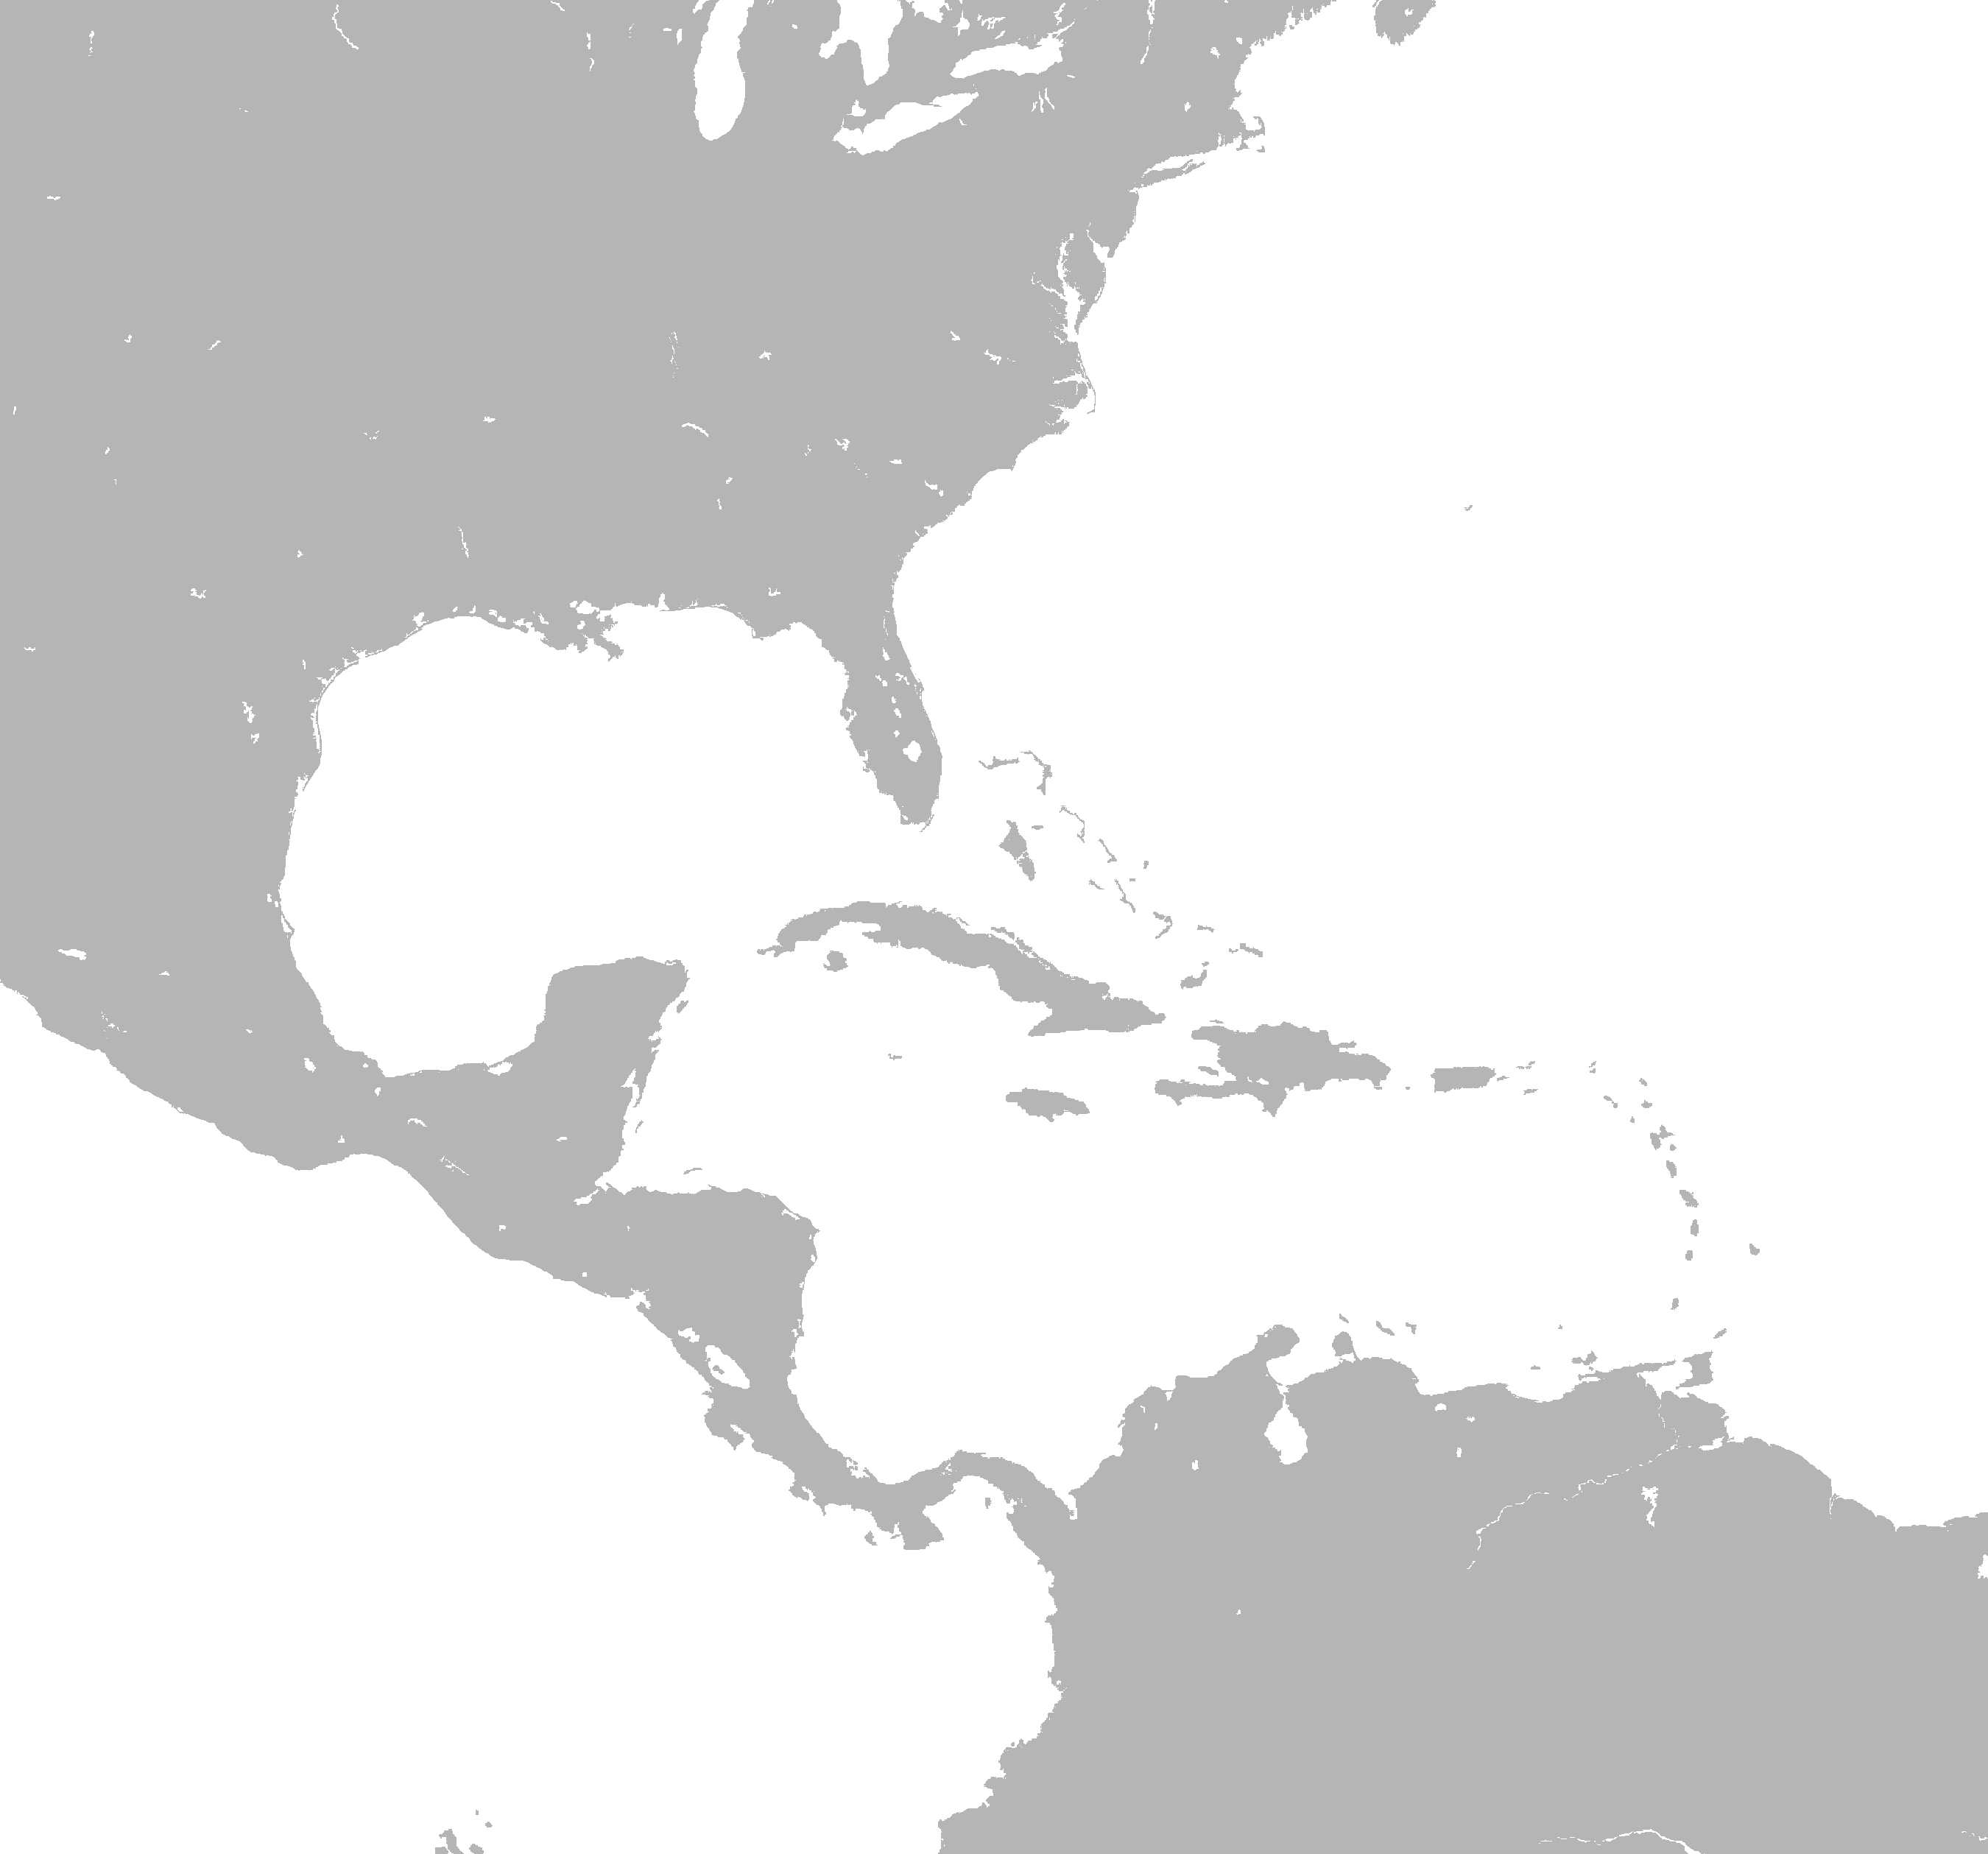 FileCaribbean Map Blankpng Familypedia FANDOM Powered By Wikia - Us and caribbean map